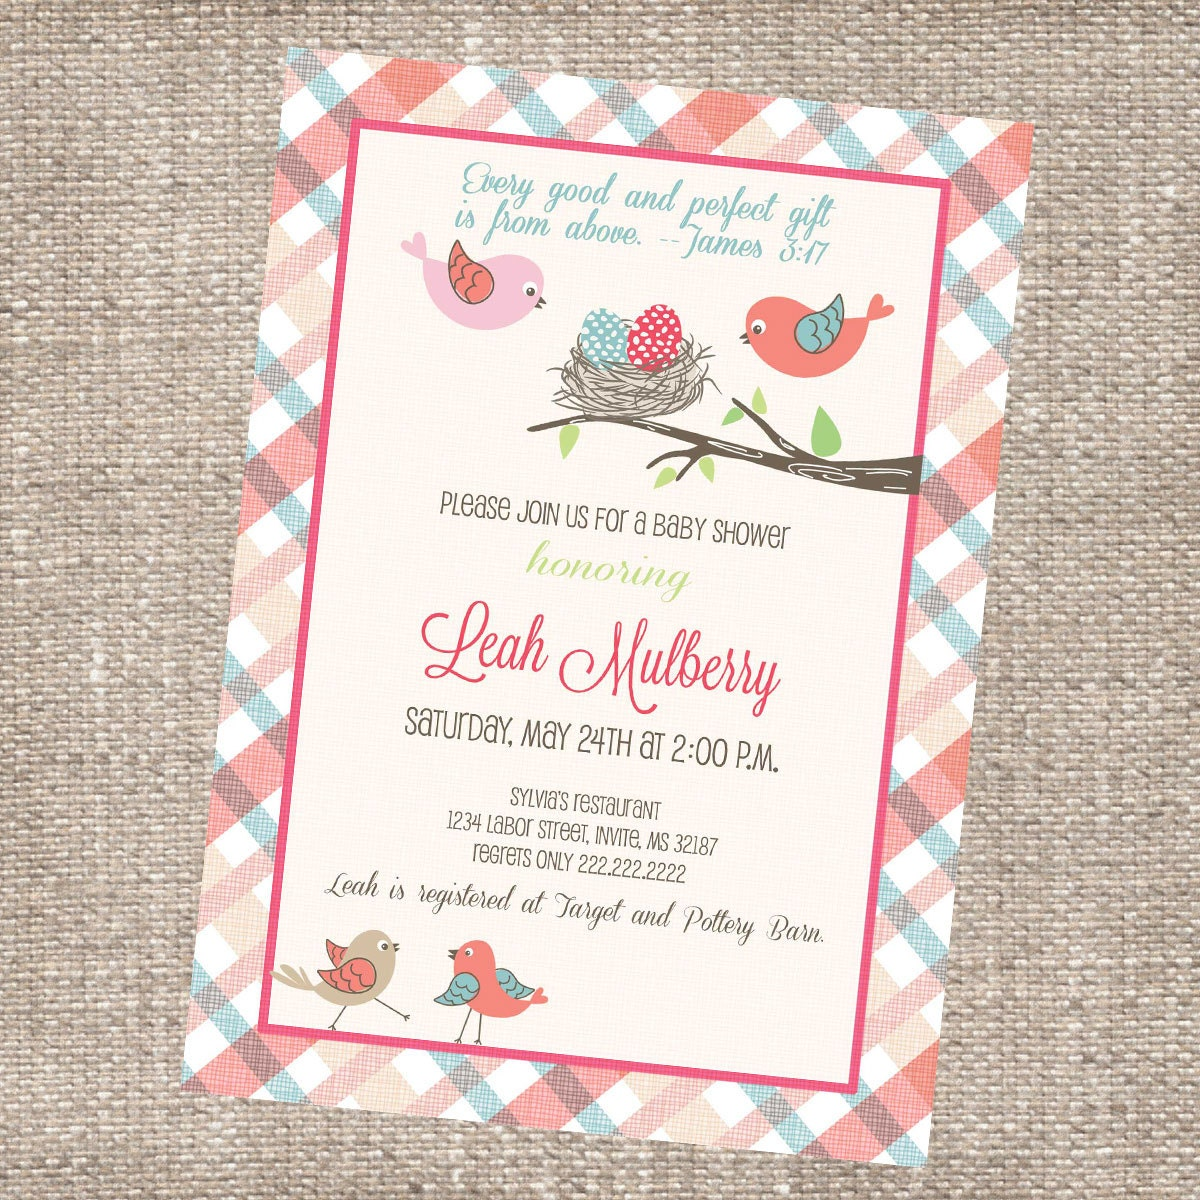 Christian Baby Shower Invitation Wording was great invitation template